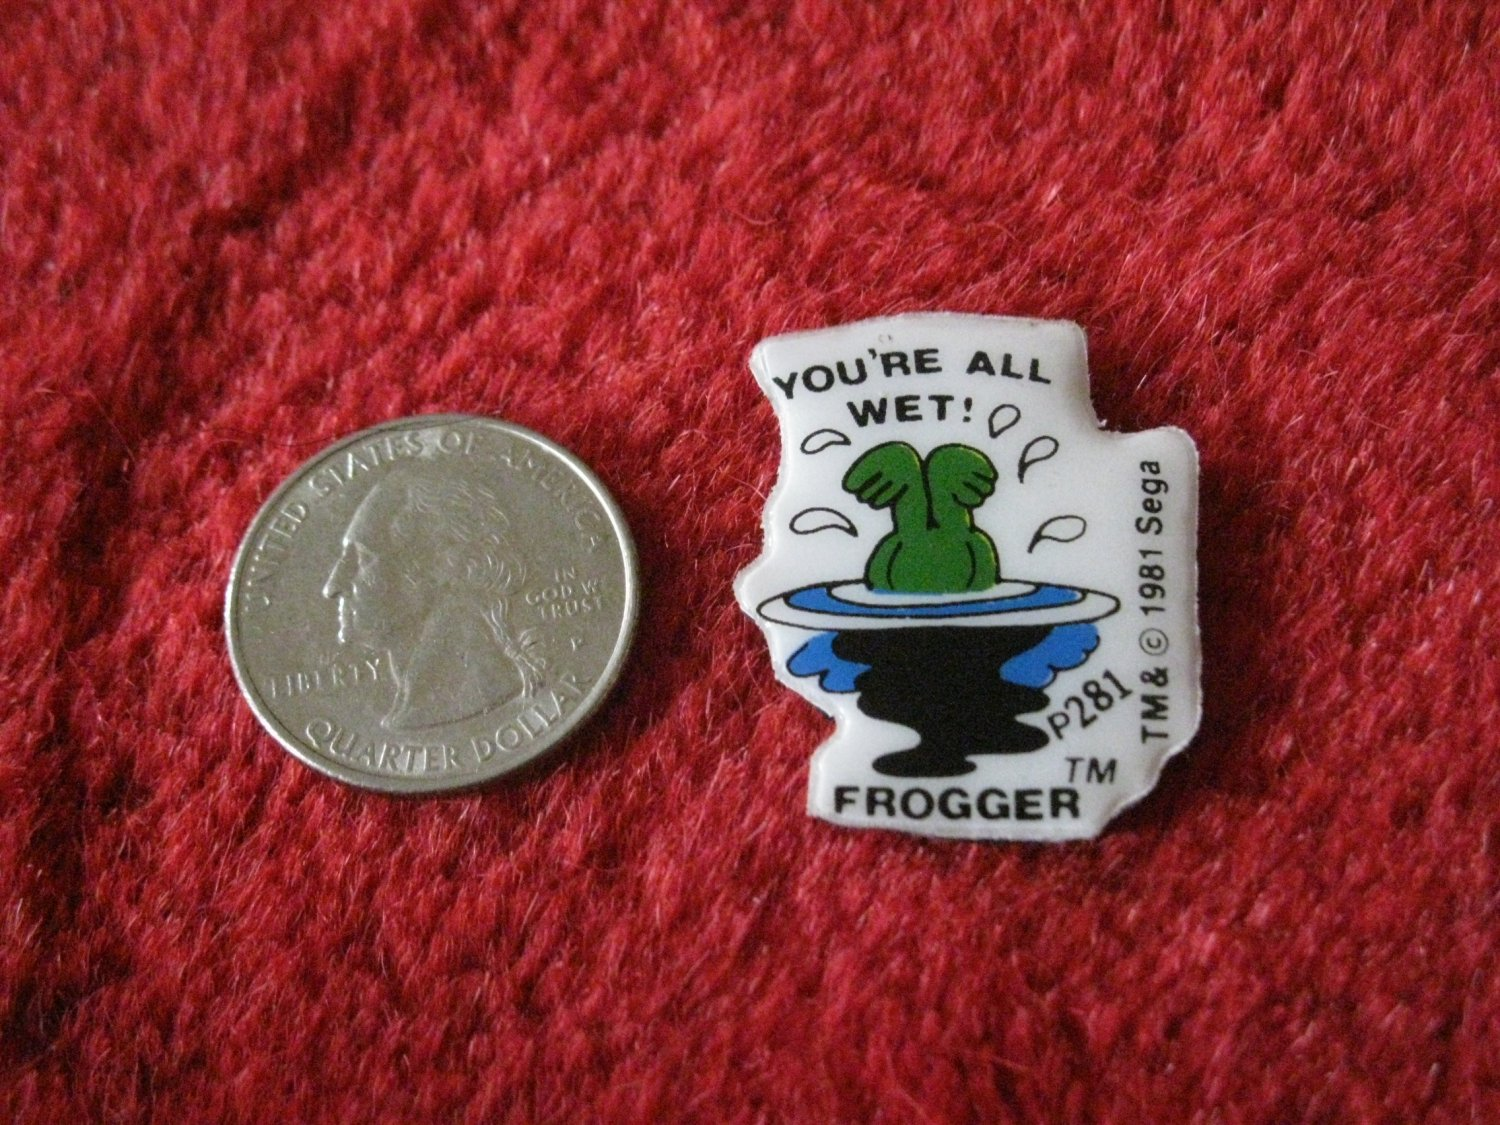 1981 Sega Frogger Series Refrigerator Magnet: #p281 You're All Wet!